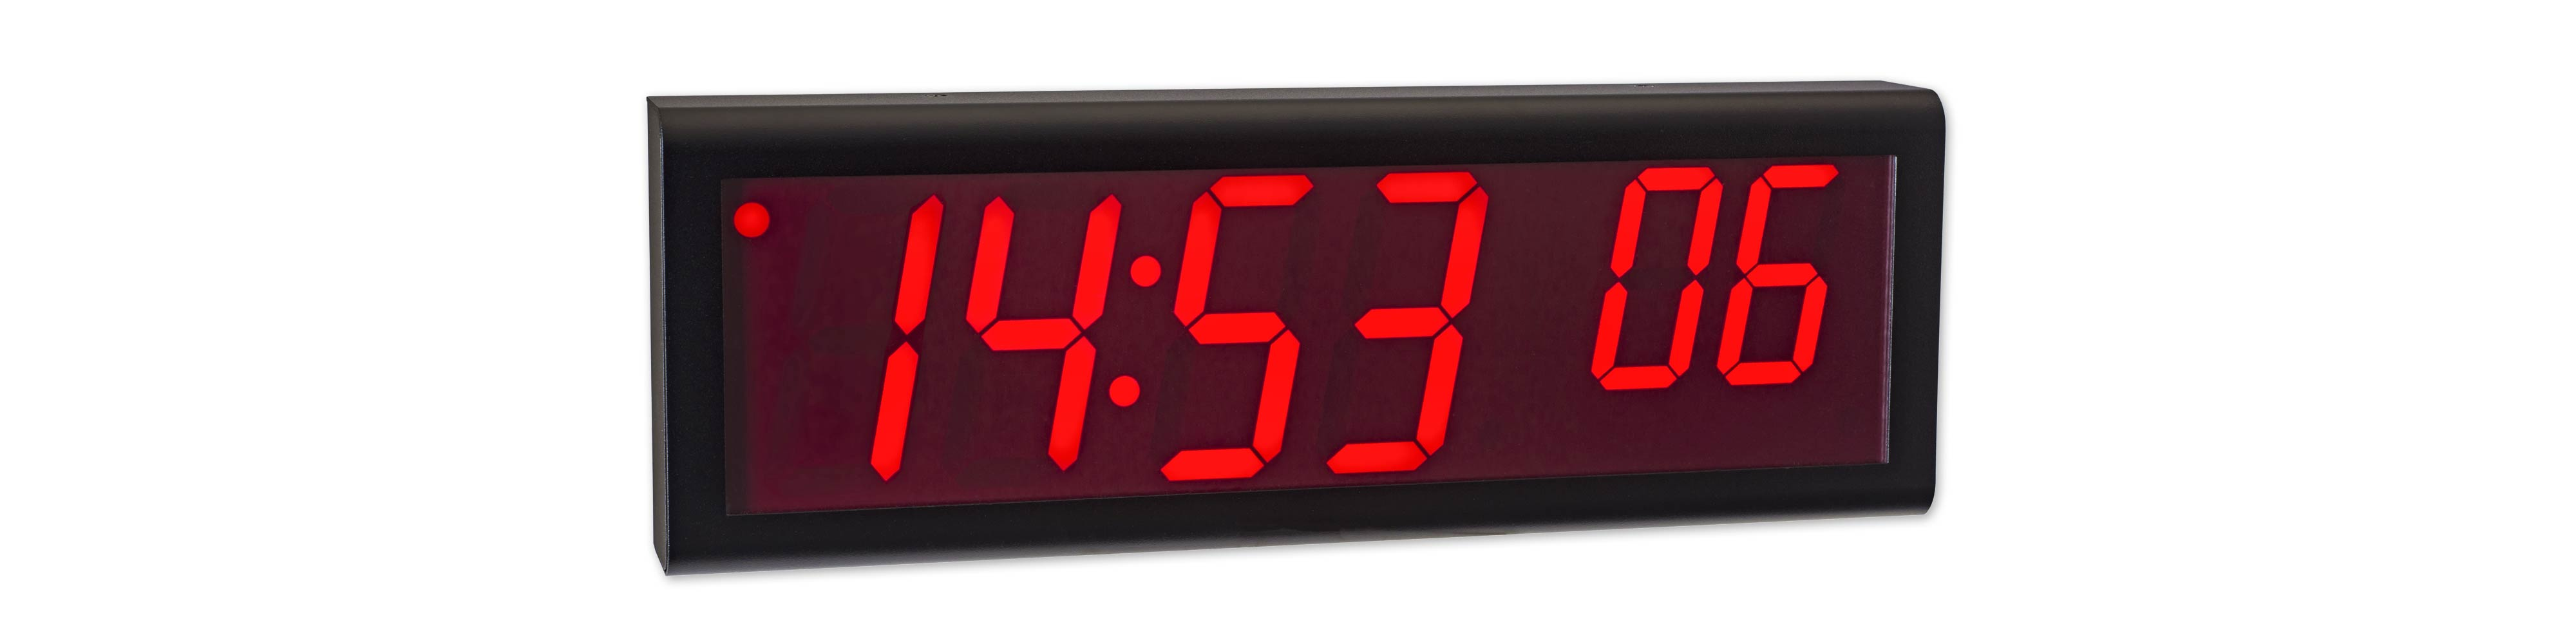 Digital Wall Clock